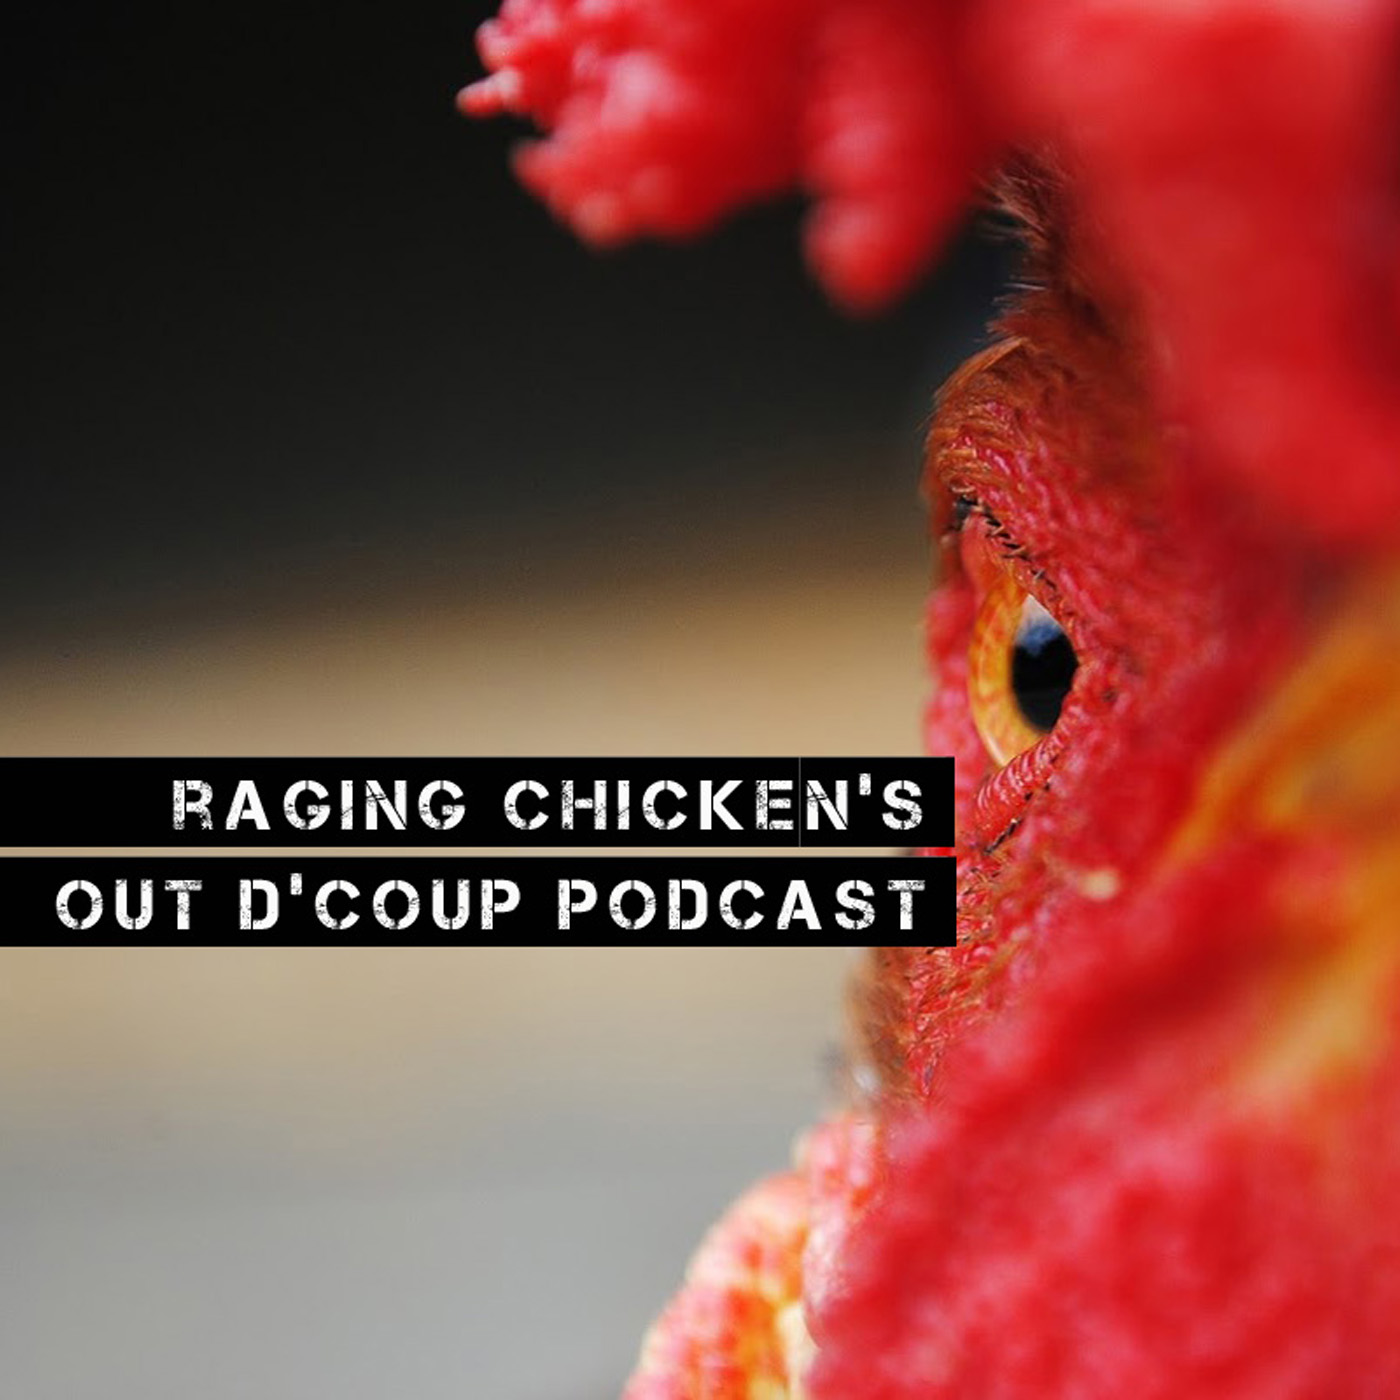 Out d'Coup Podcast